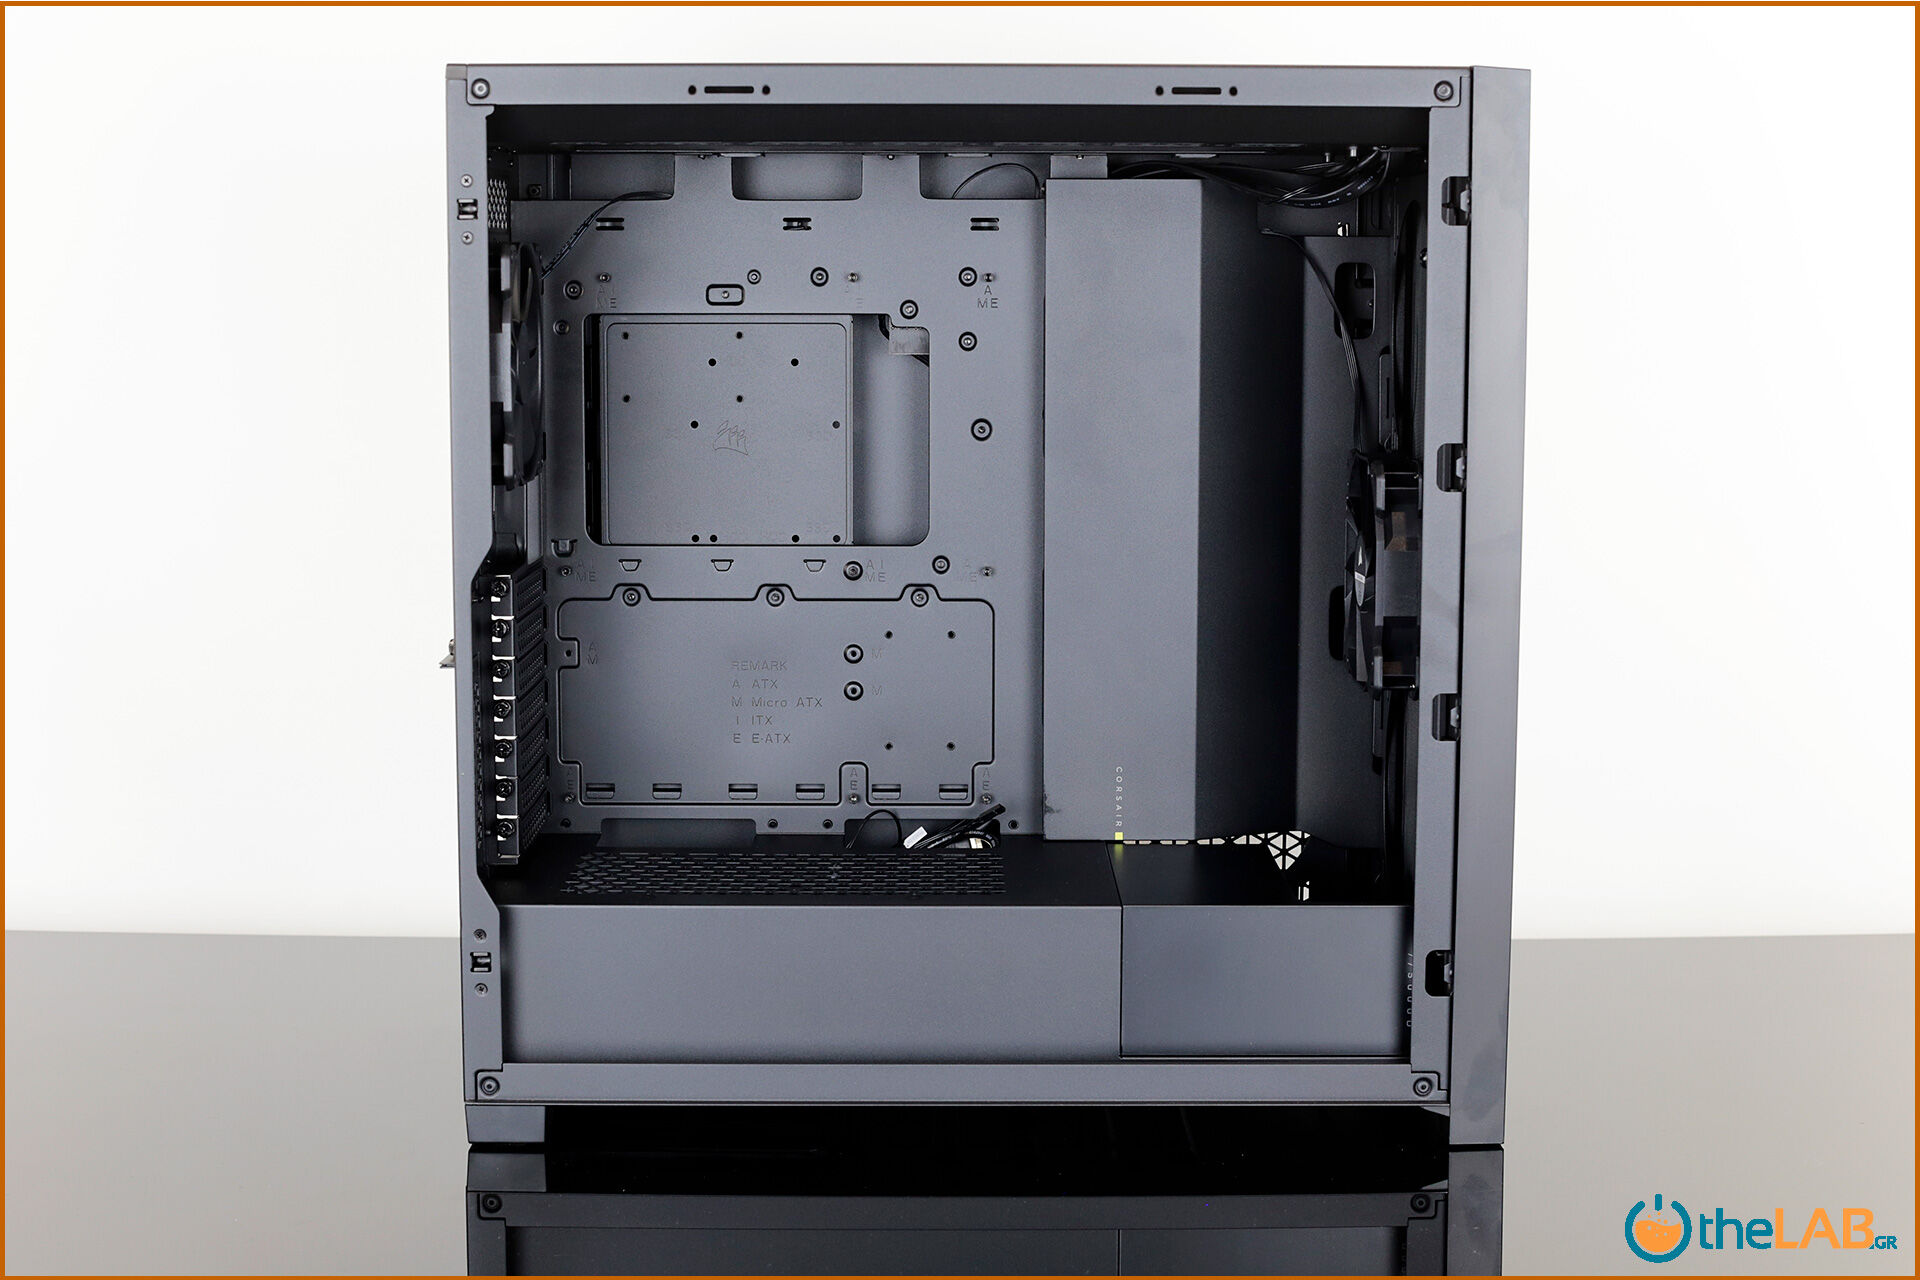 Corsair_icue_5000D__case_smart_exterior_interior_mid_tower_gaming_case_smart_review_image651.jpg